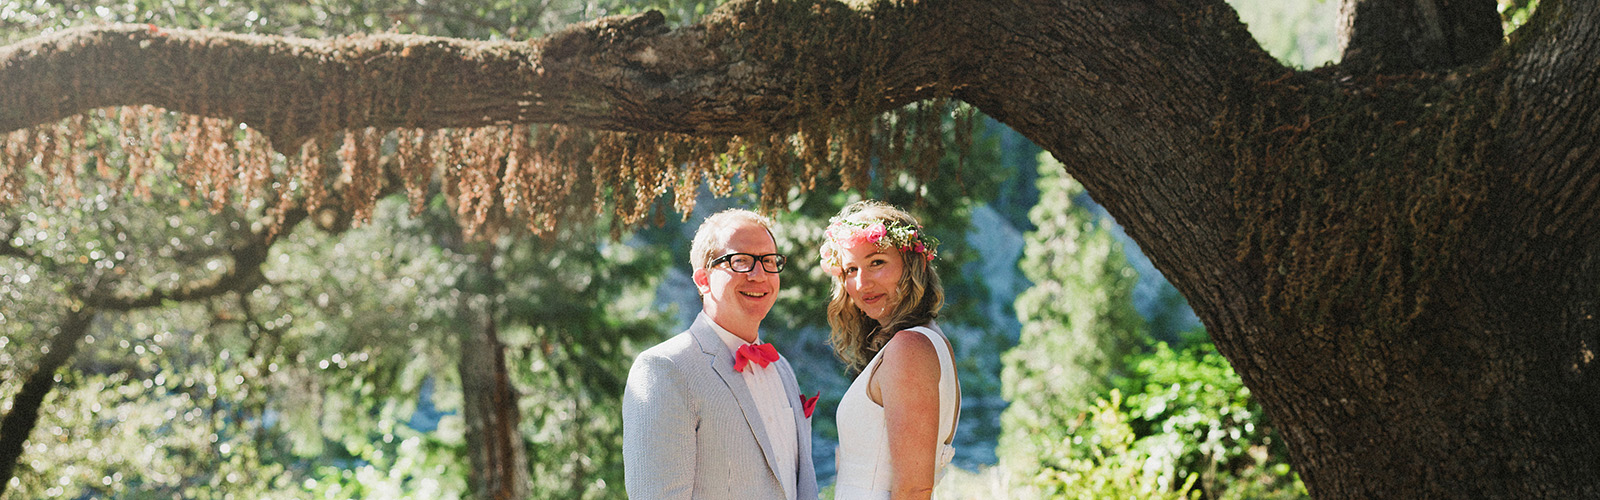 Portland Wedding Photographer Reviews - Brett and JR's Smith River Wedding in Humboldt County